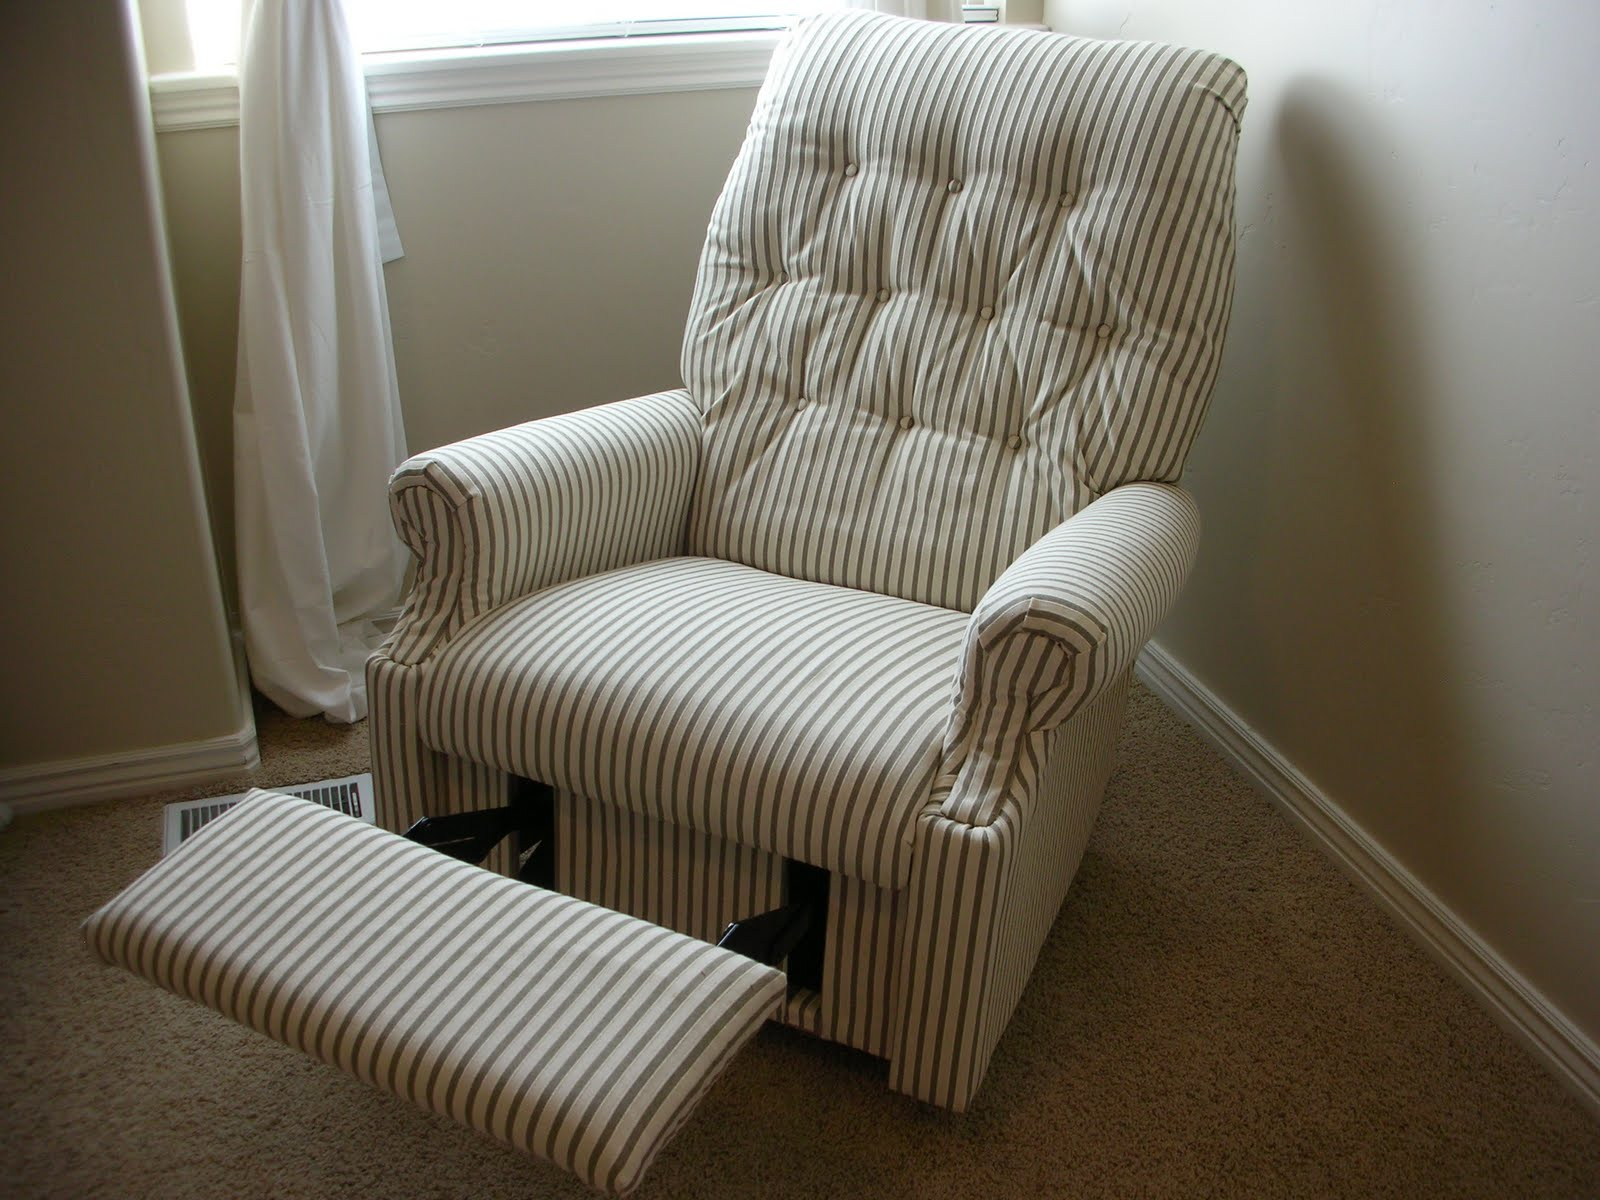 Maternity Rocking Chair Leather Images Do It Yourself Divas: Diy: Reupholster An Old La-z-boy Recliner